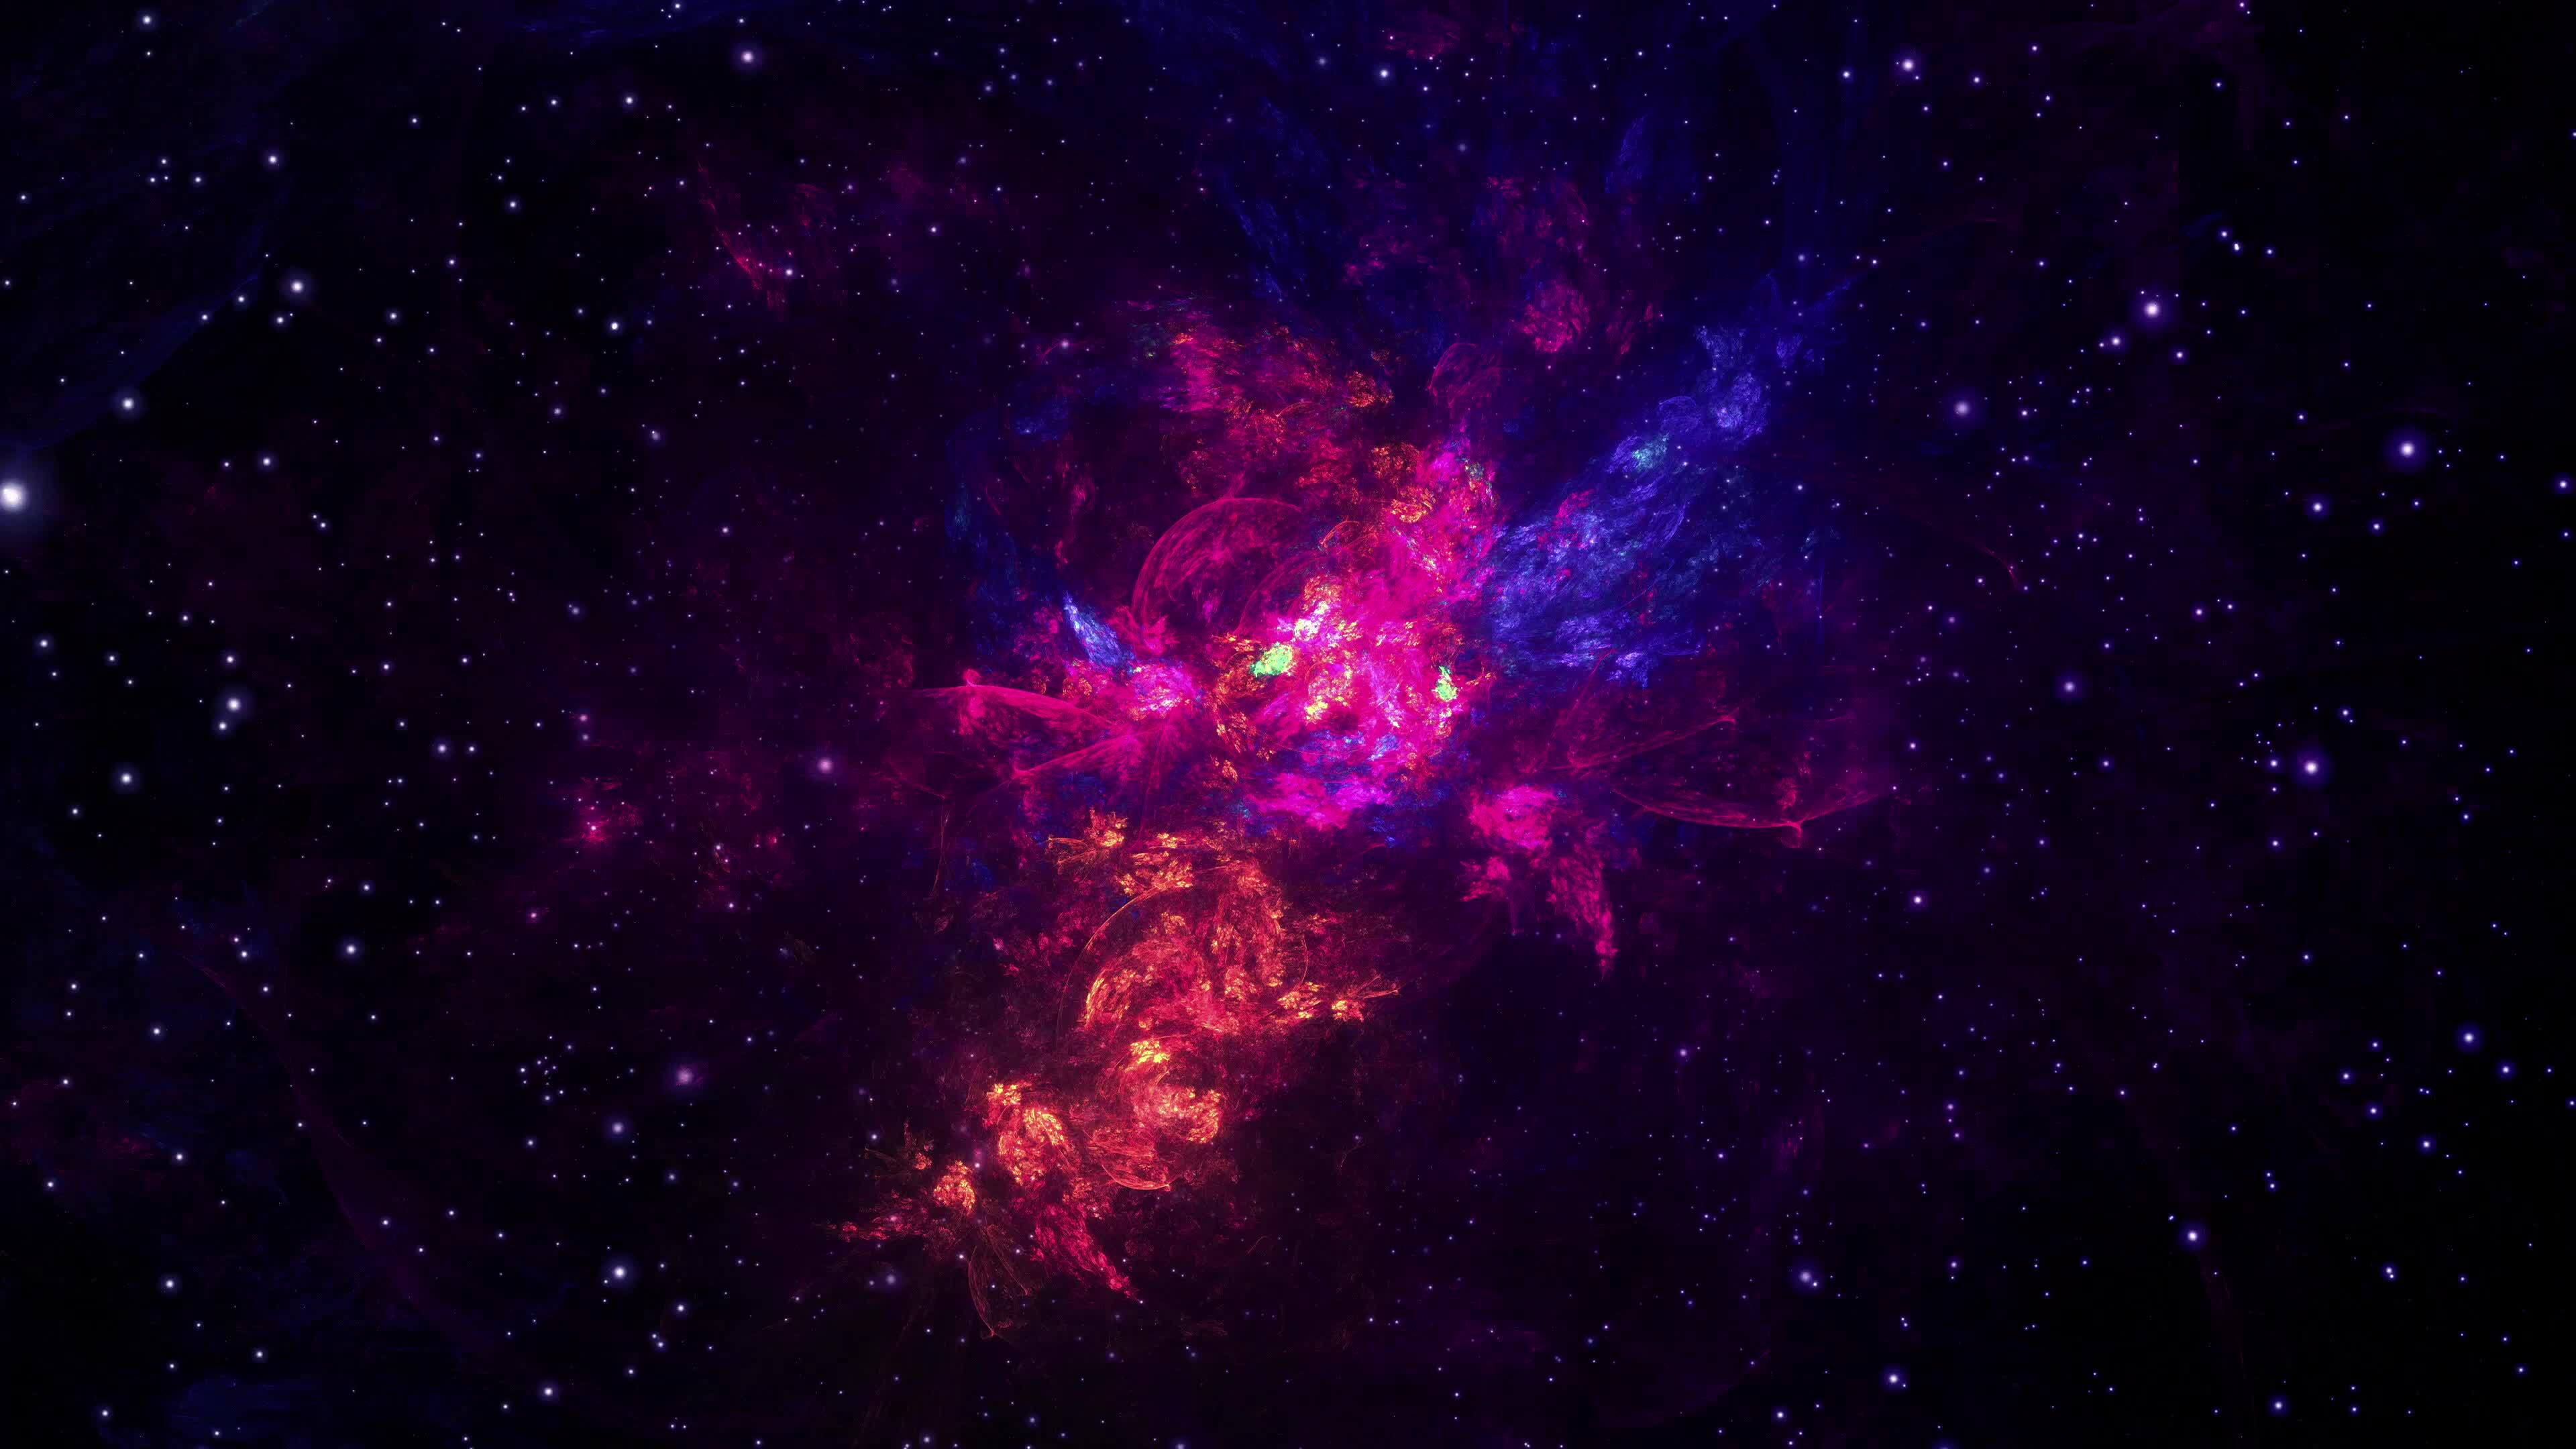 space-universe-abstract-art-ux.jpg